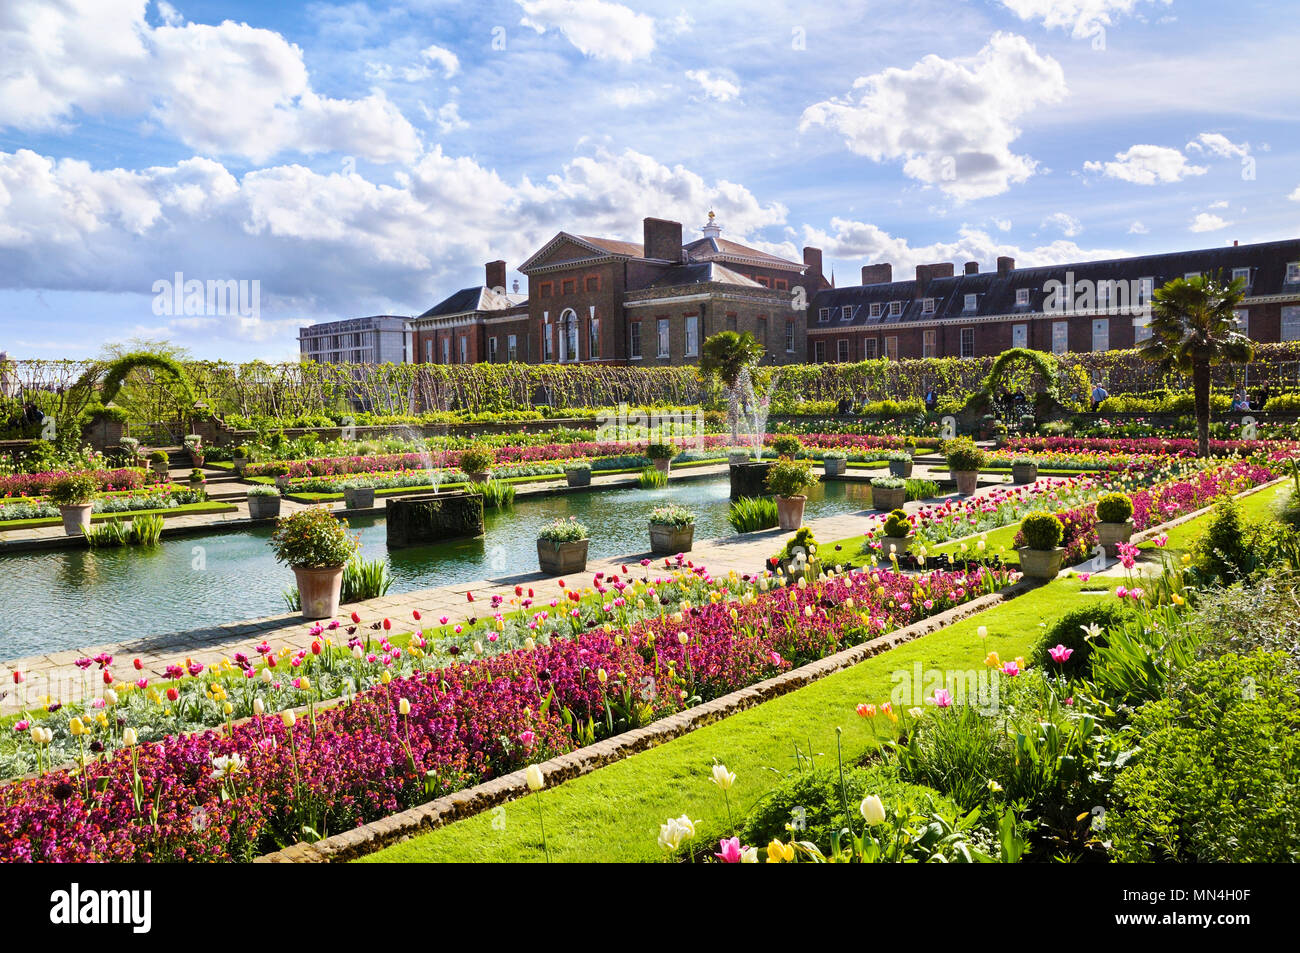 Beautiful floral display in the Sunken Garden at Kensington Palace, Royal Borough of Kensington and Chelsea, London, England, UK - Stock Image